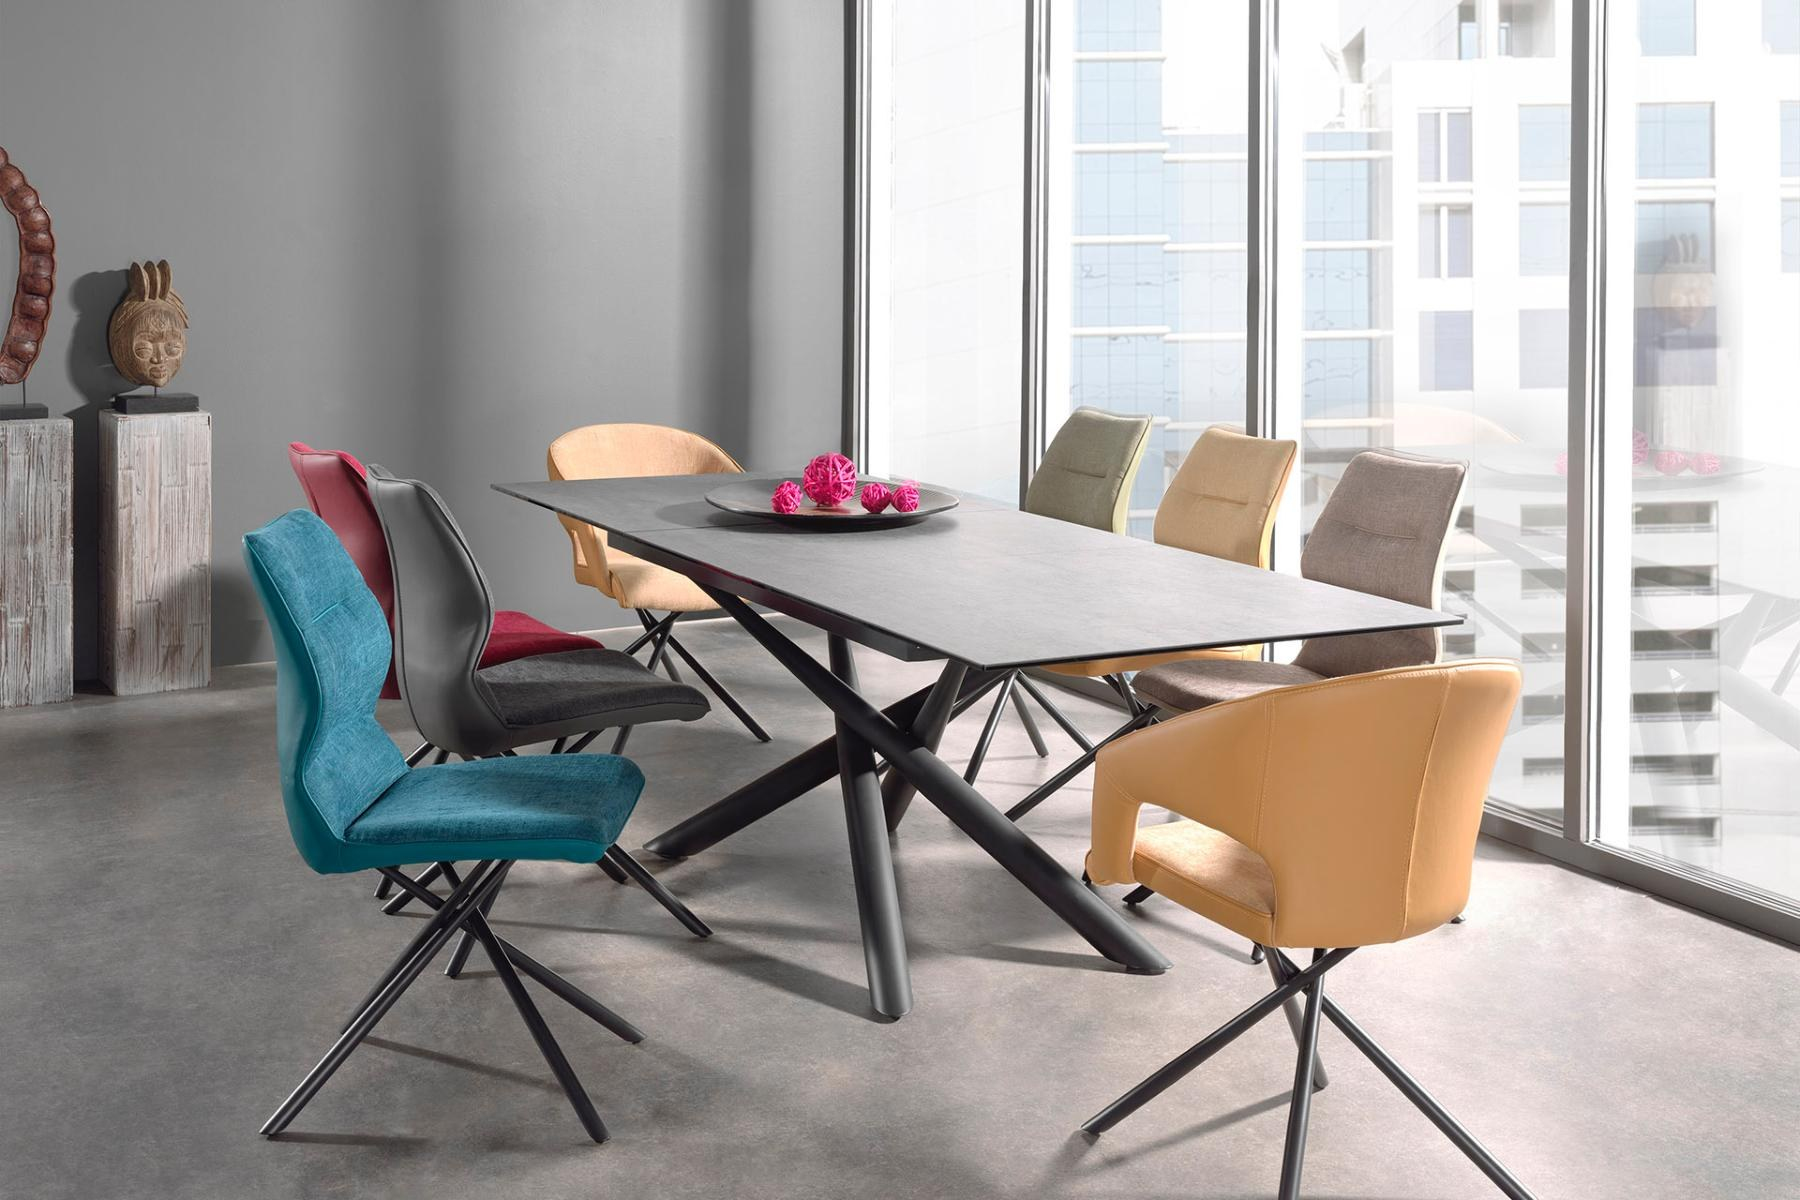 FORCE A TABLE Fabricants Runis MEUBLES DECORATIONS